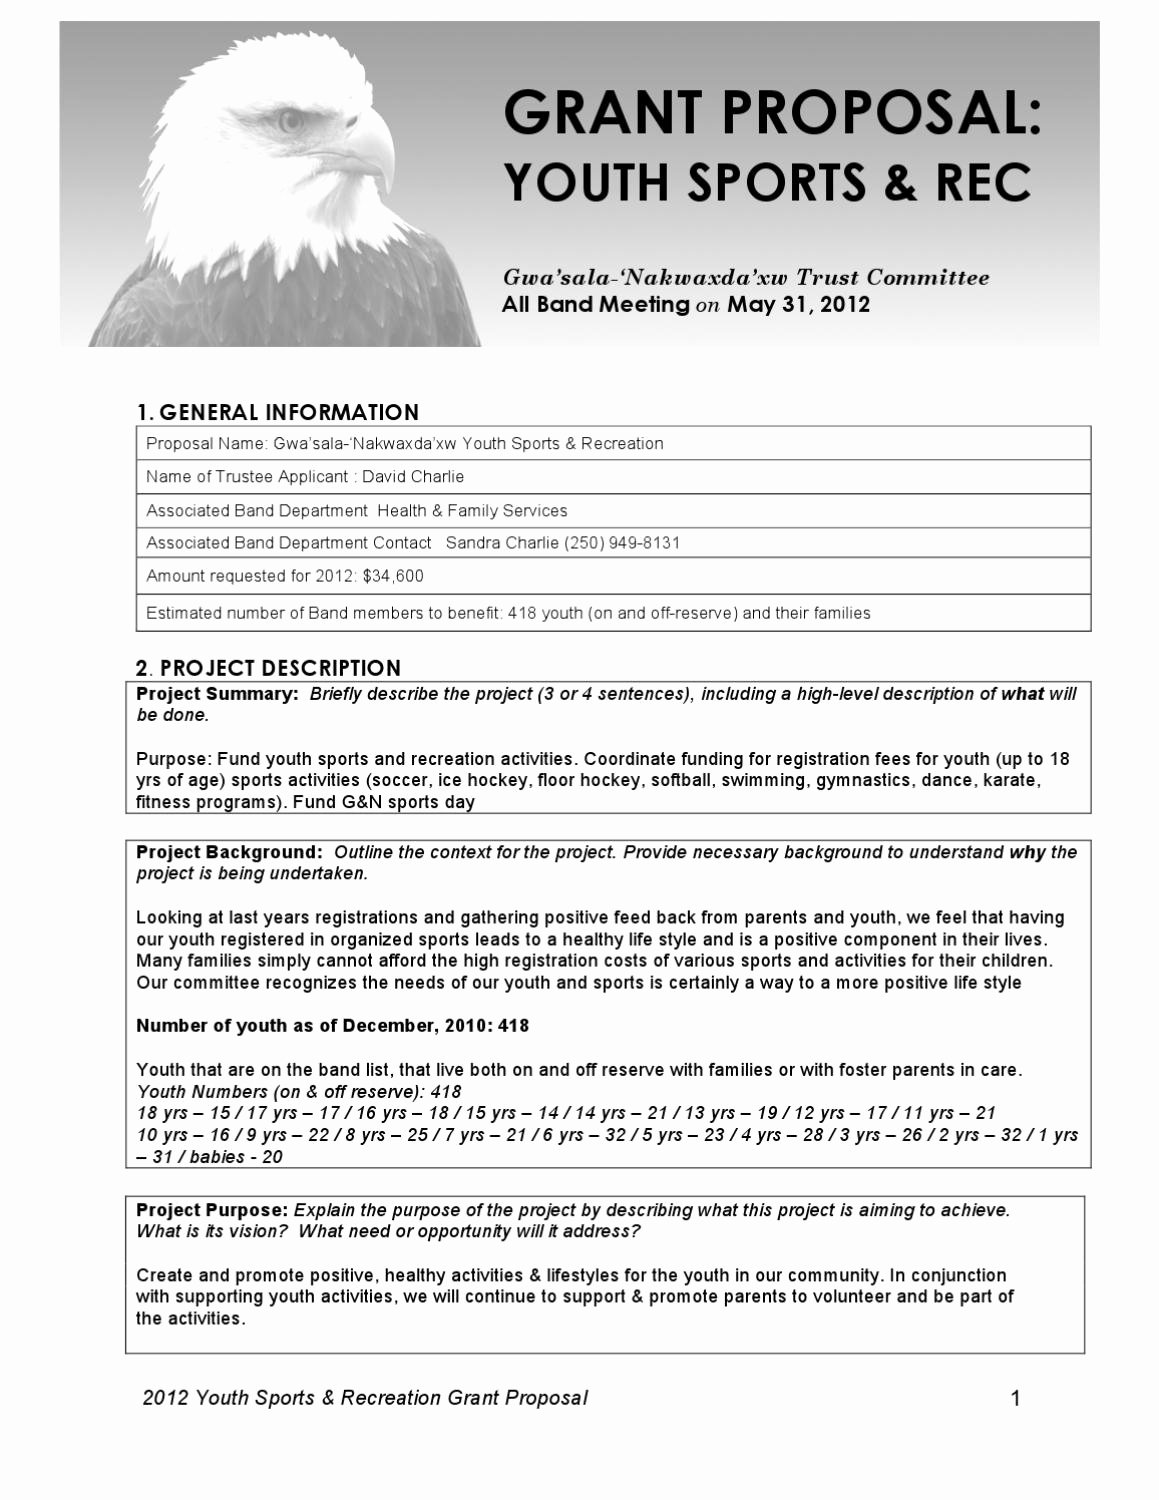 2012 Gn Trust Youth Sports and Rec Grant Proposal 2012 by